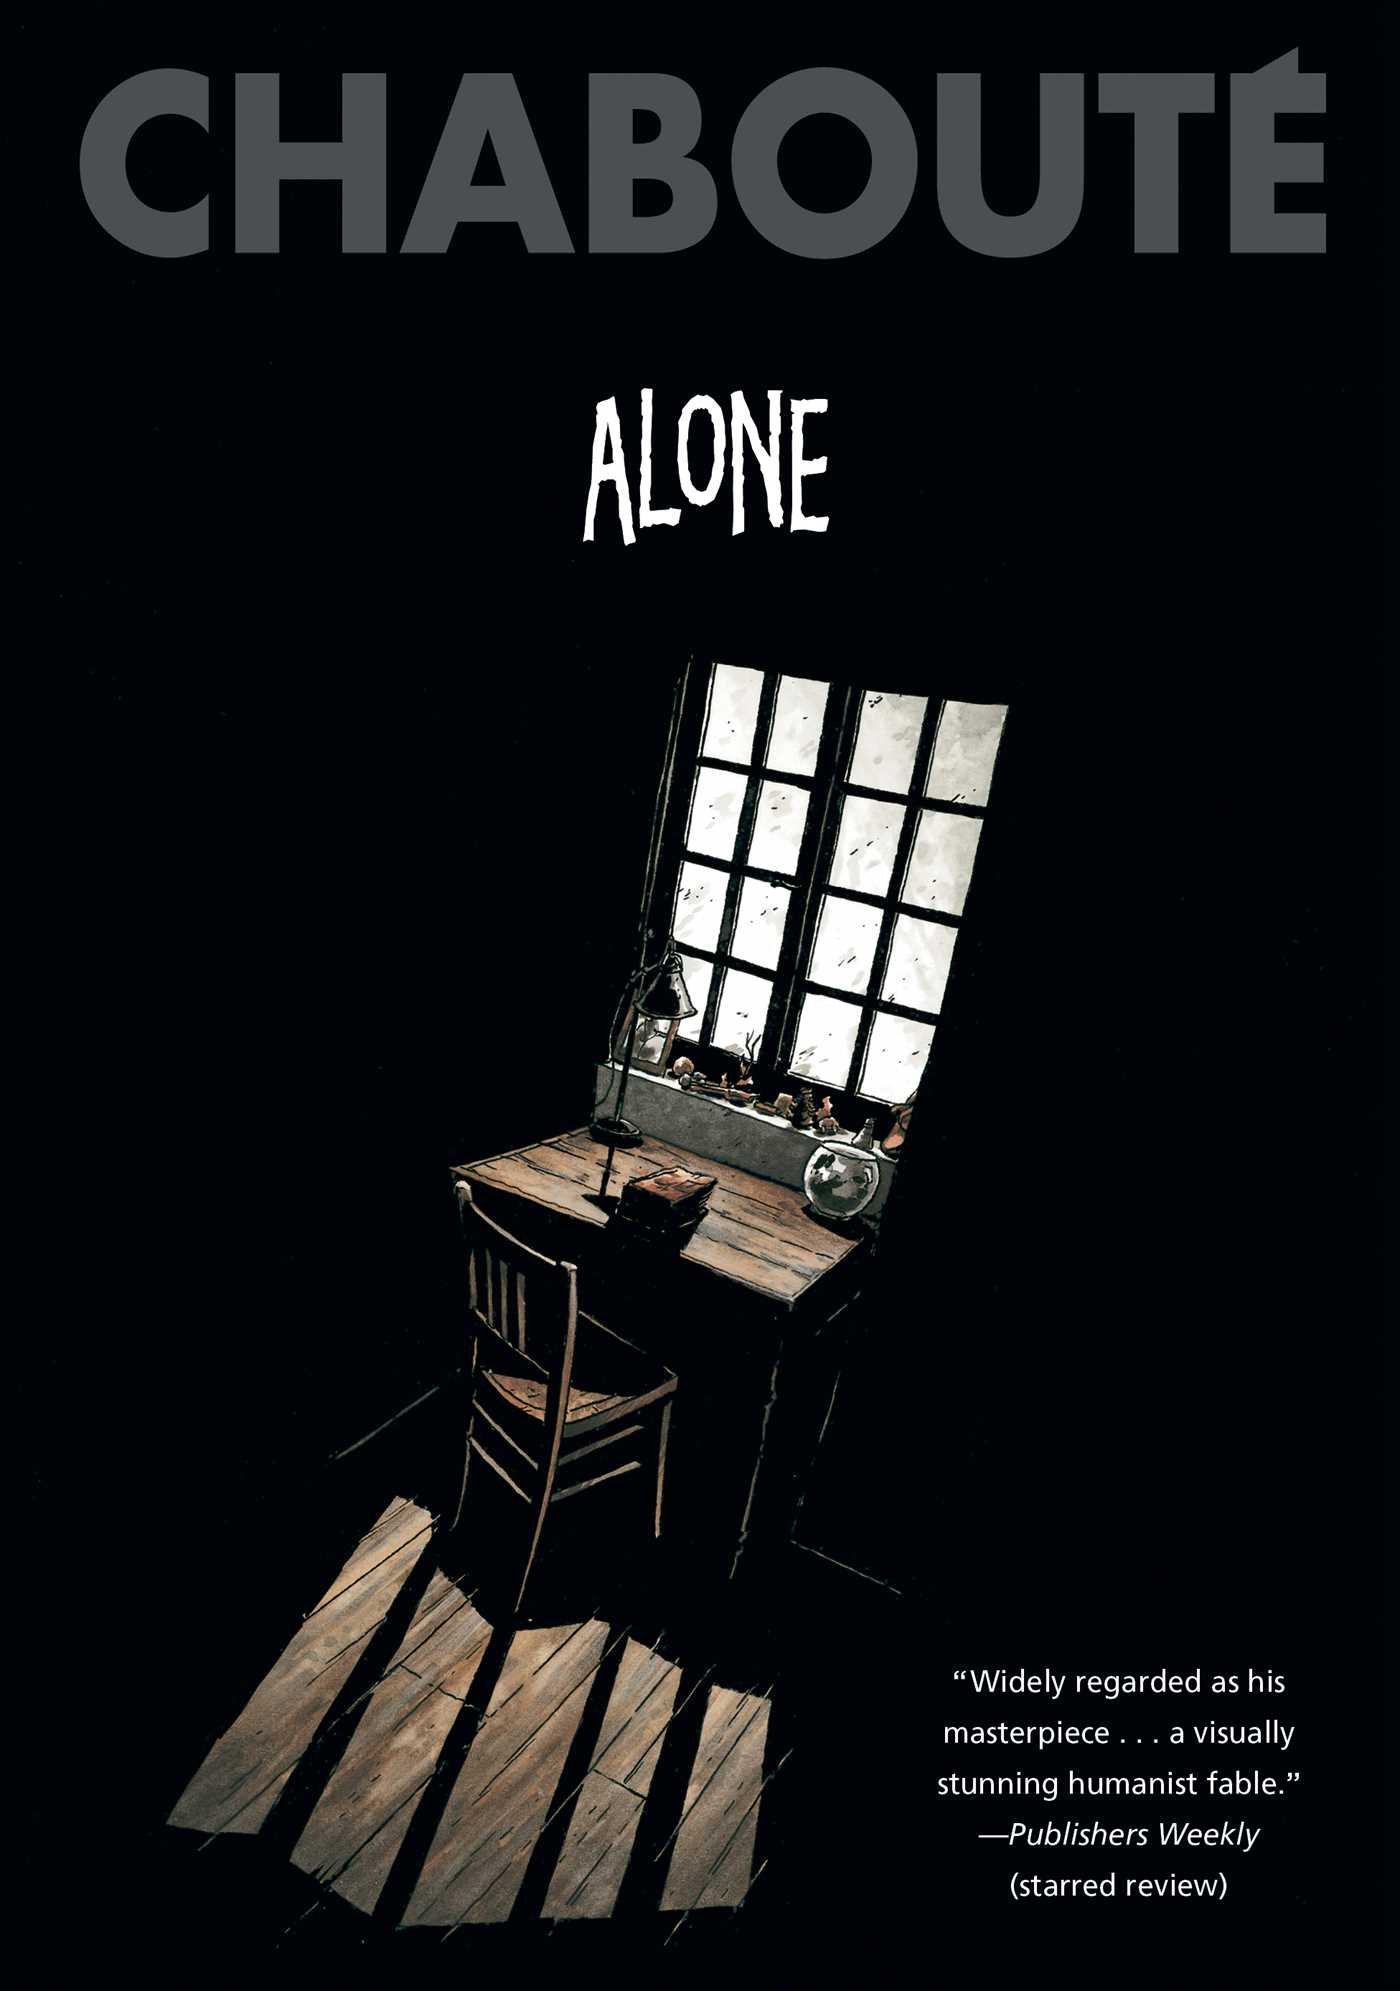 Alone by Christophe Chabouté